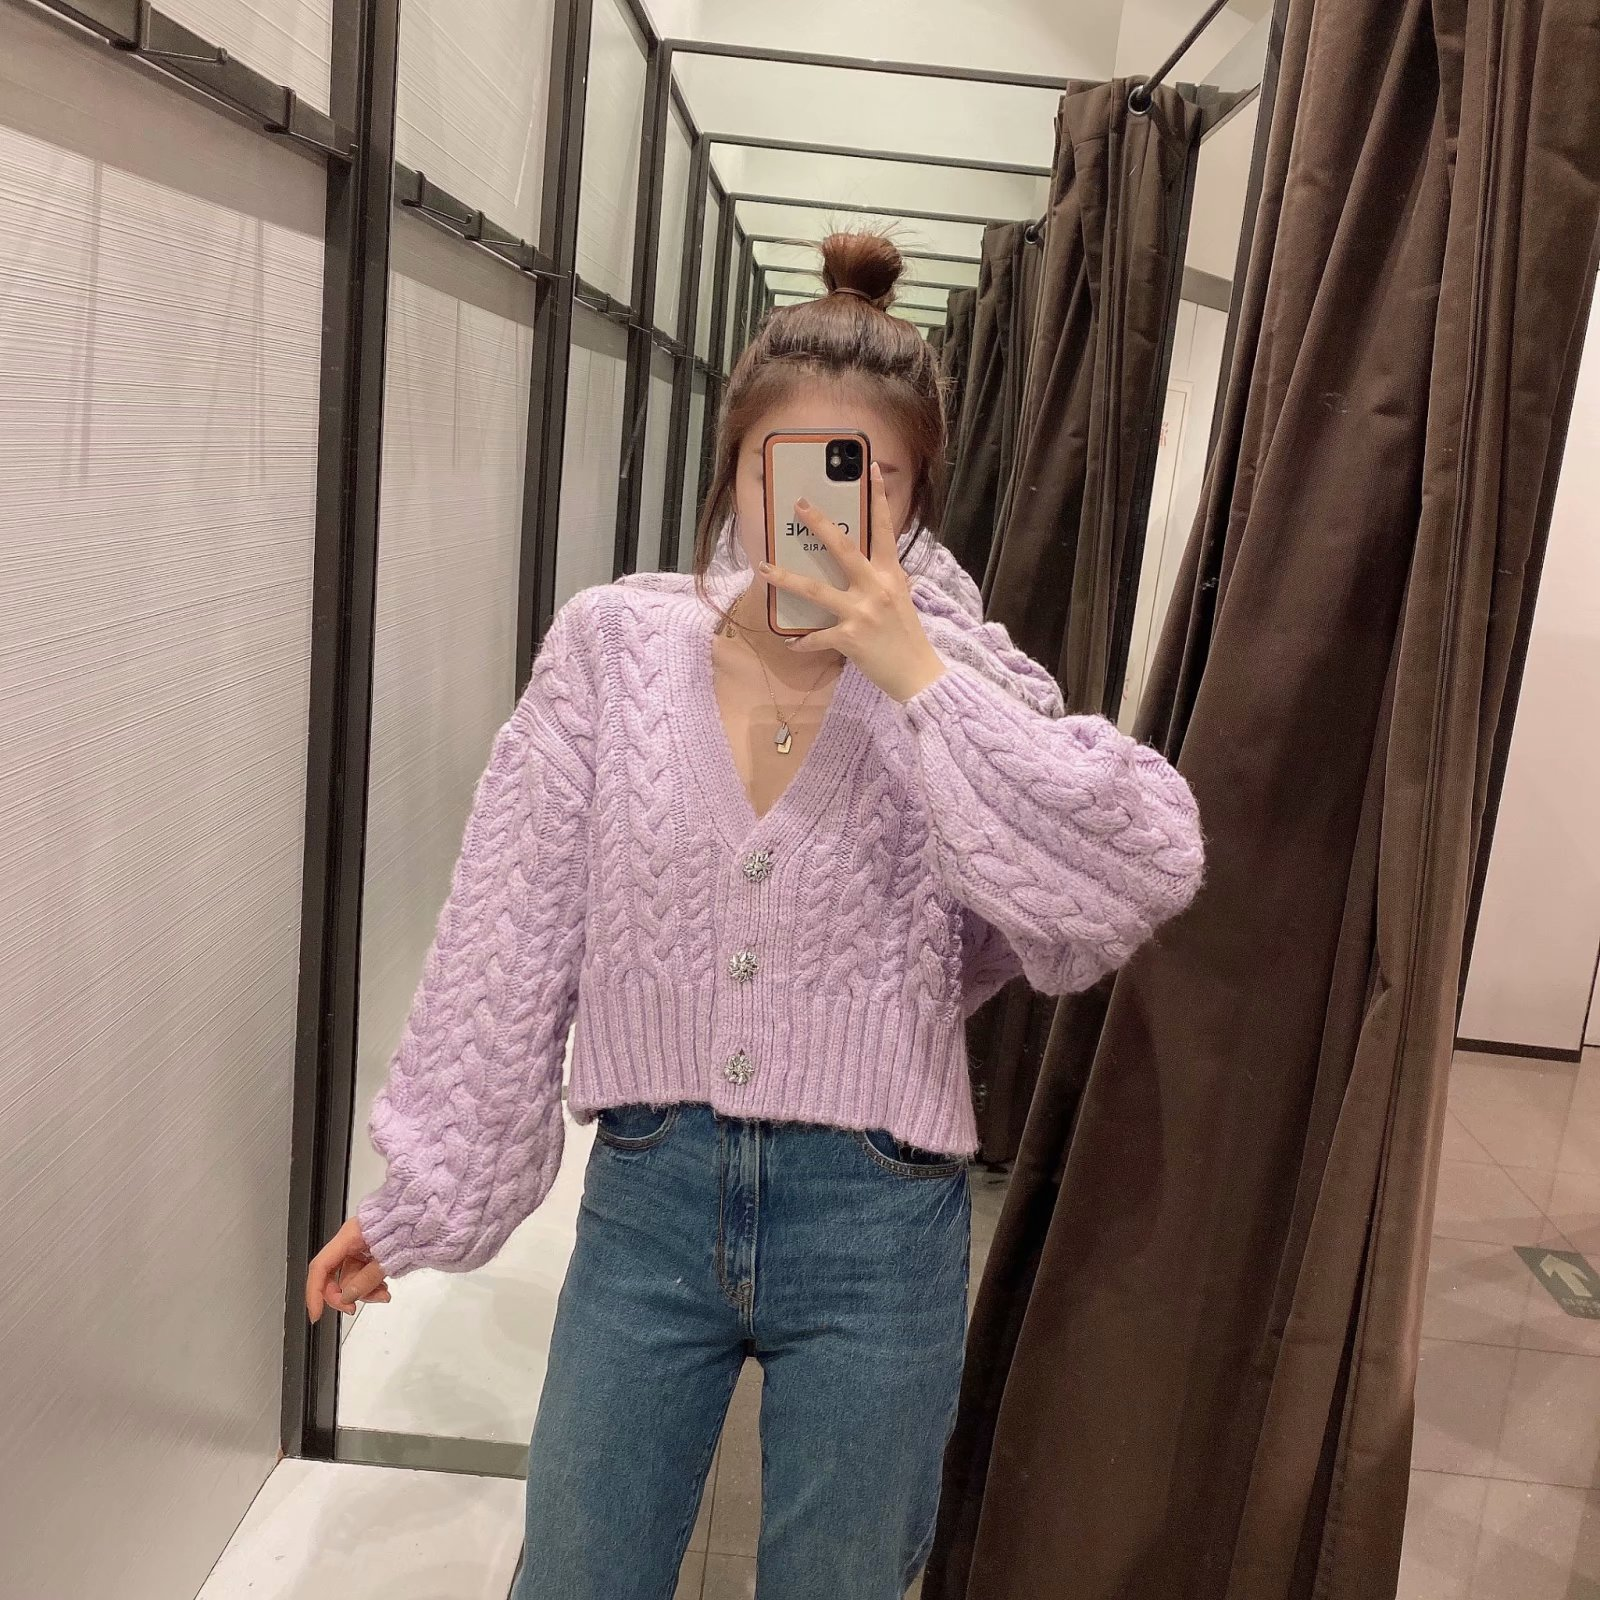 2021 New Fashion Artificial Jewelry Button Knitted Cardigan Coat Woman Cardigan Sweater V-neck Short Jacket